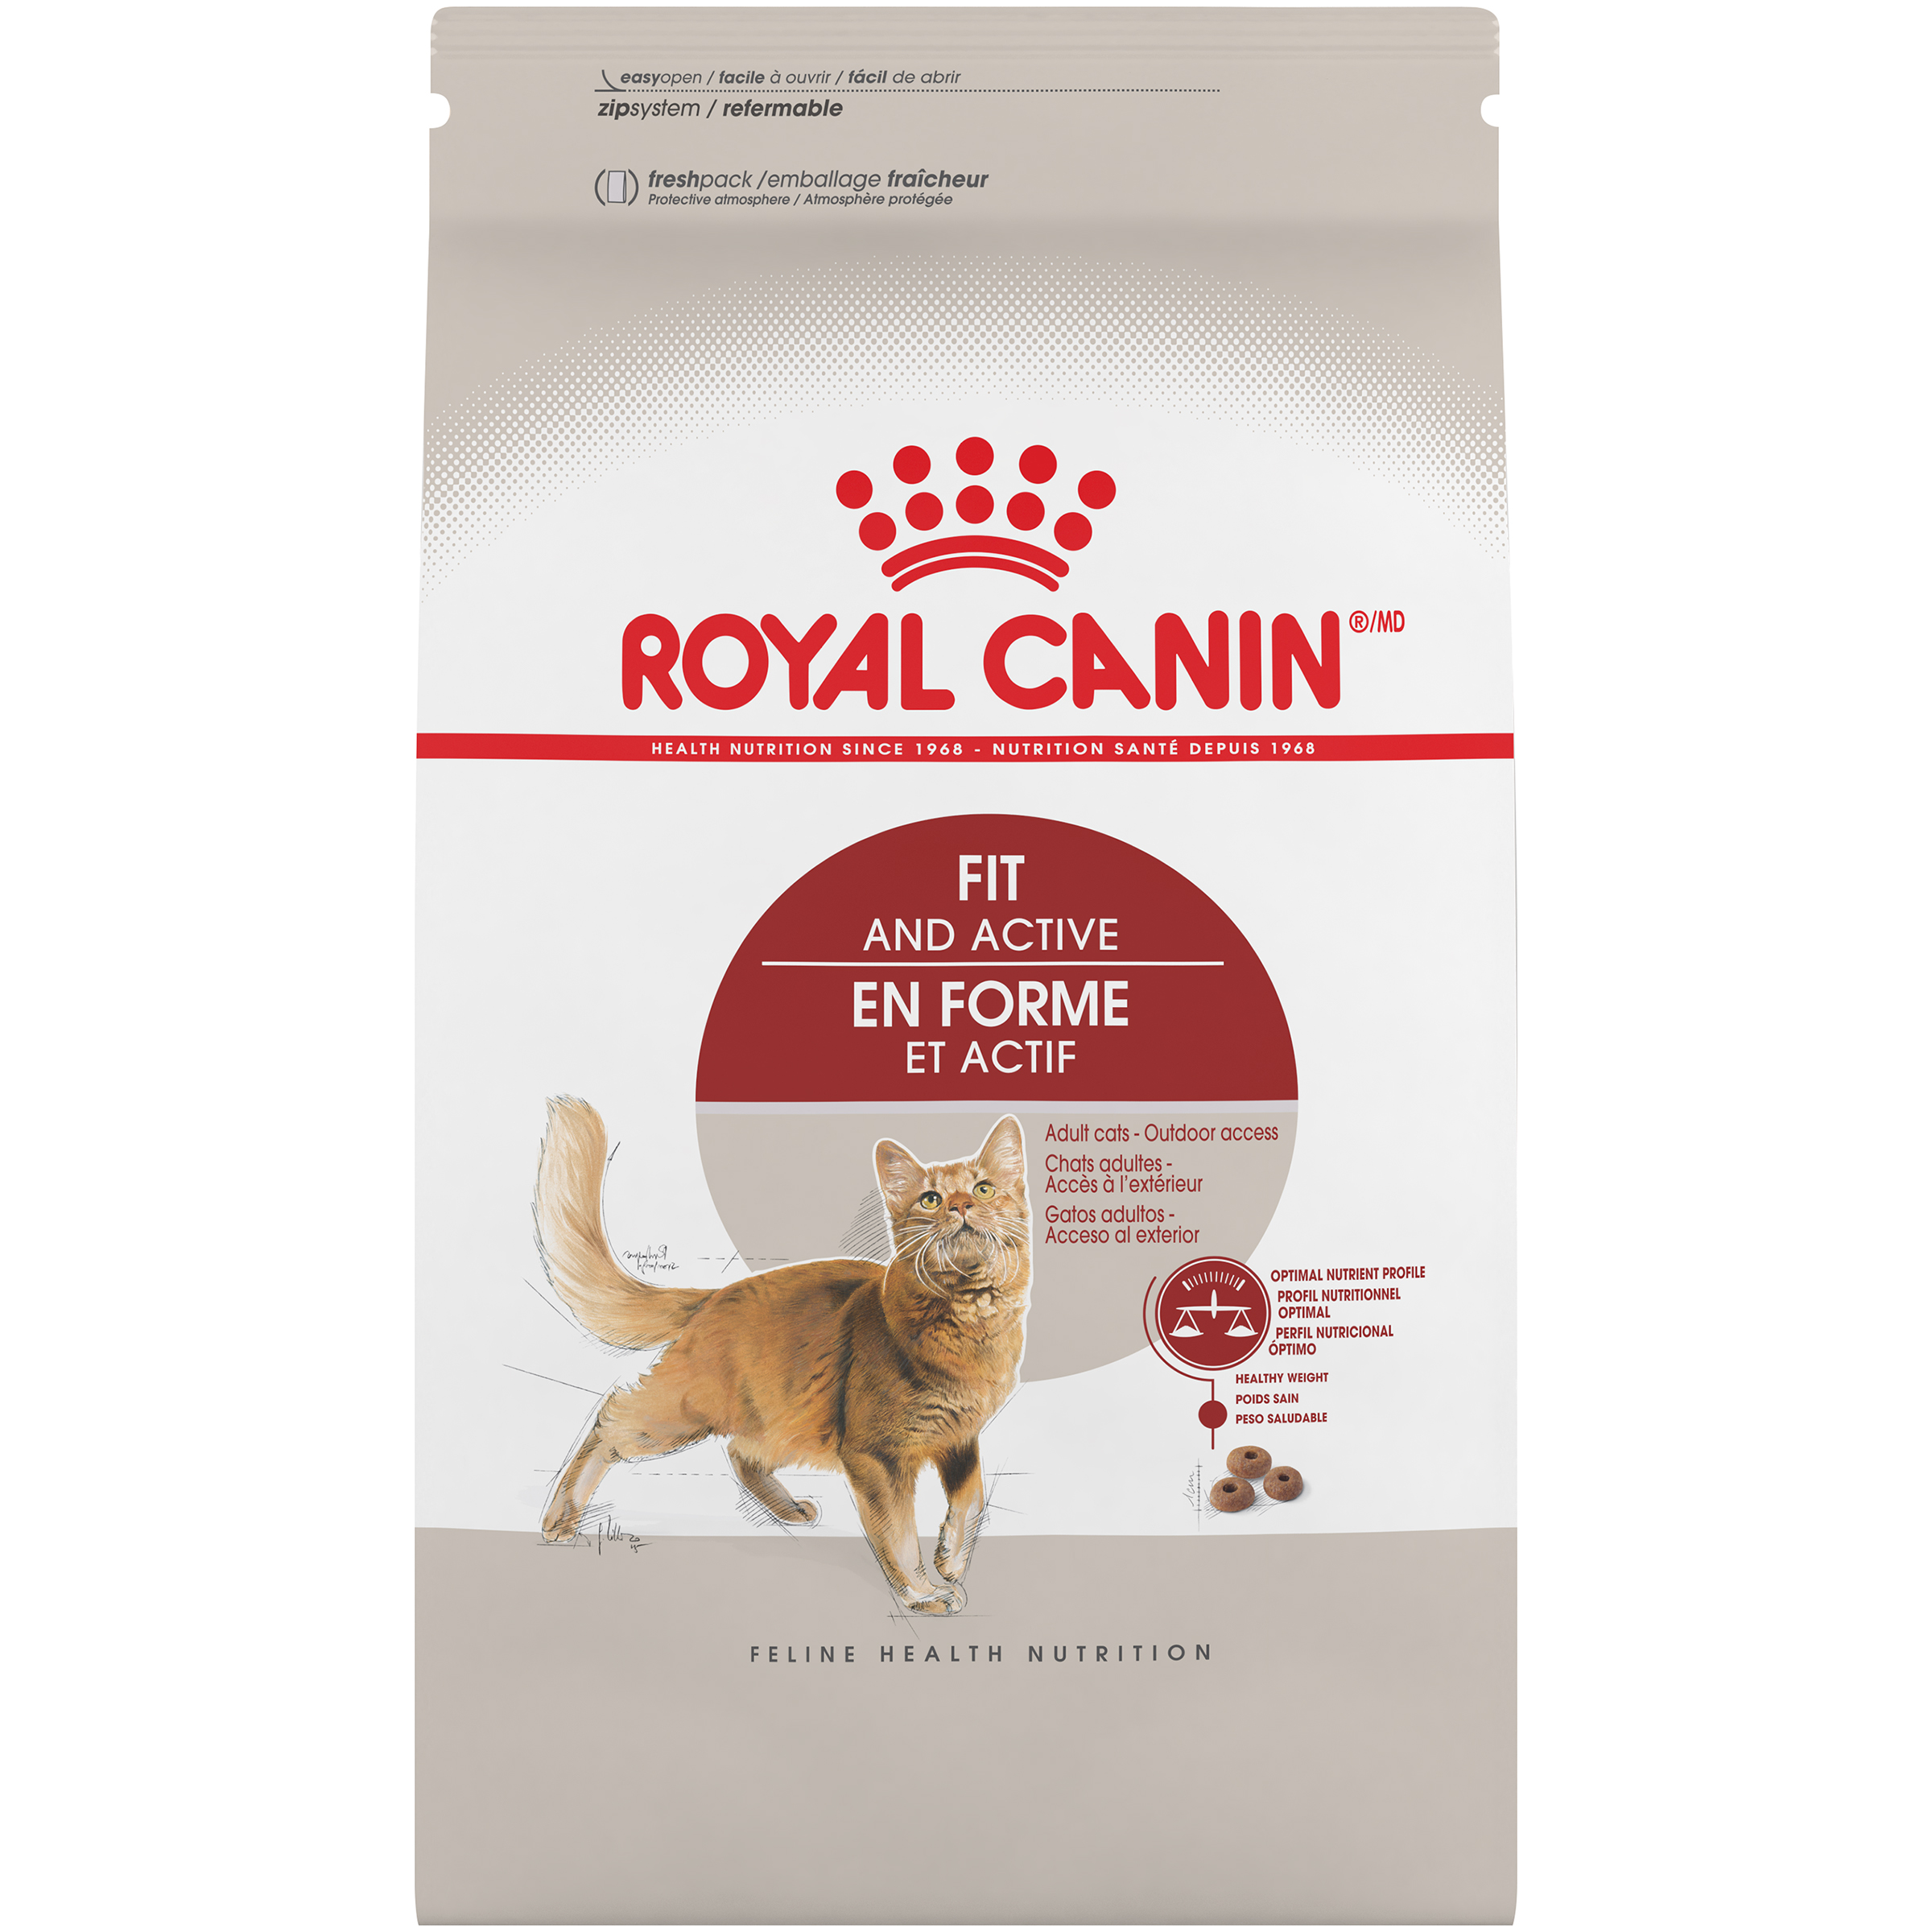 Royal Canin Adult Fit & Active Dry Cat Food, 7 lb